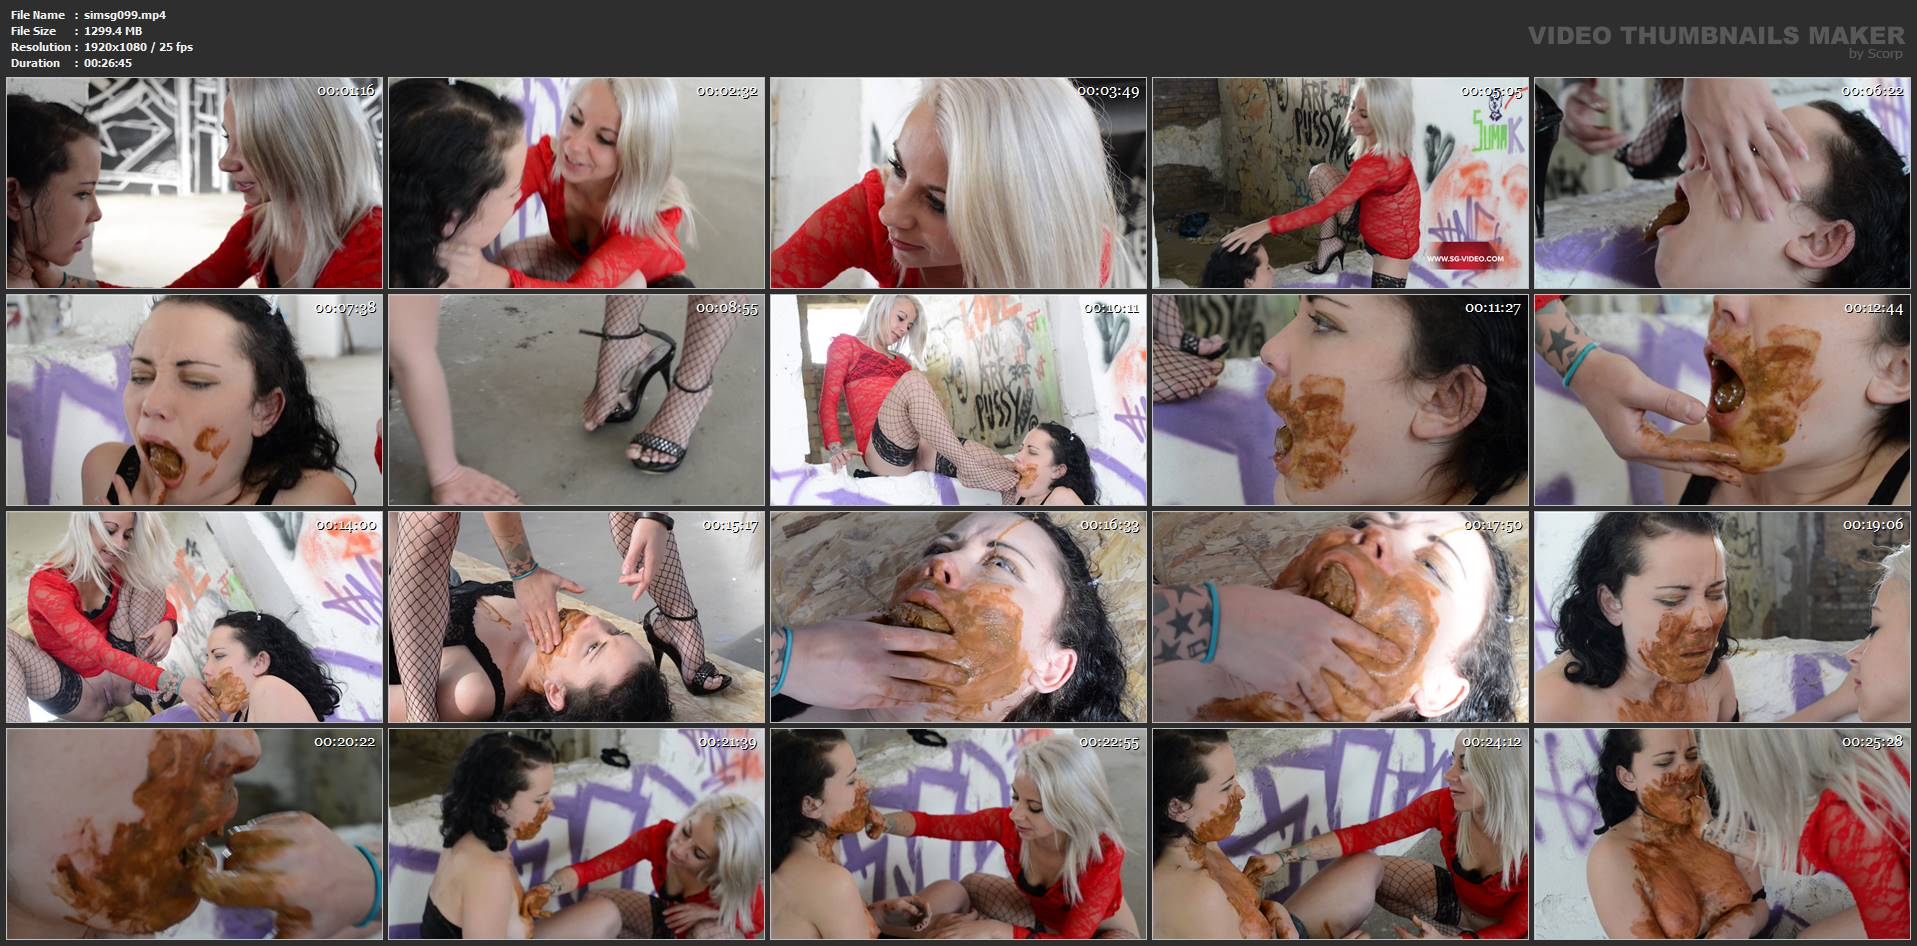 [SCAT INTO MOUSE / SG-VIDEO] Eat My Scat Fucking Bitch By Kamila White (BIG SCAT) [FULL HD][1080p][MP4]